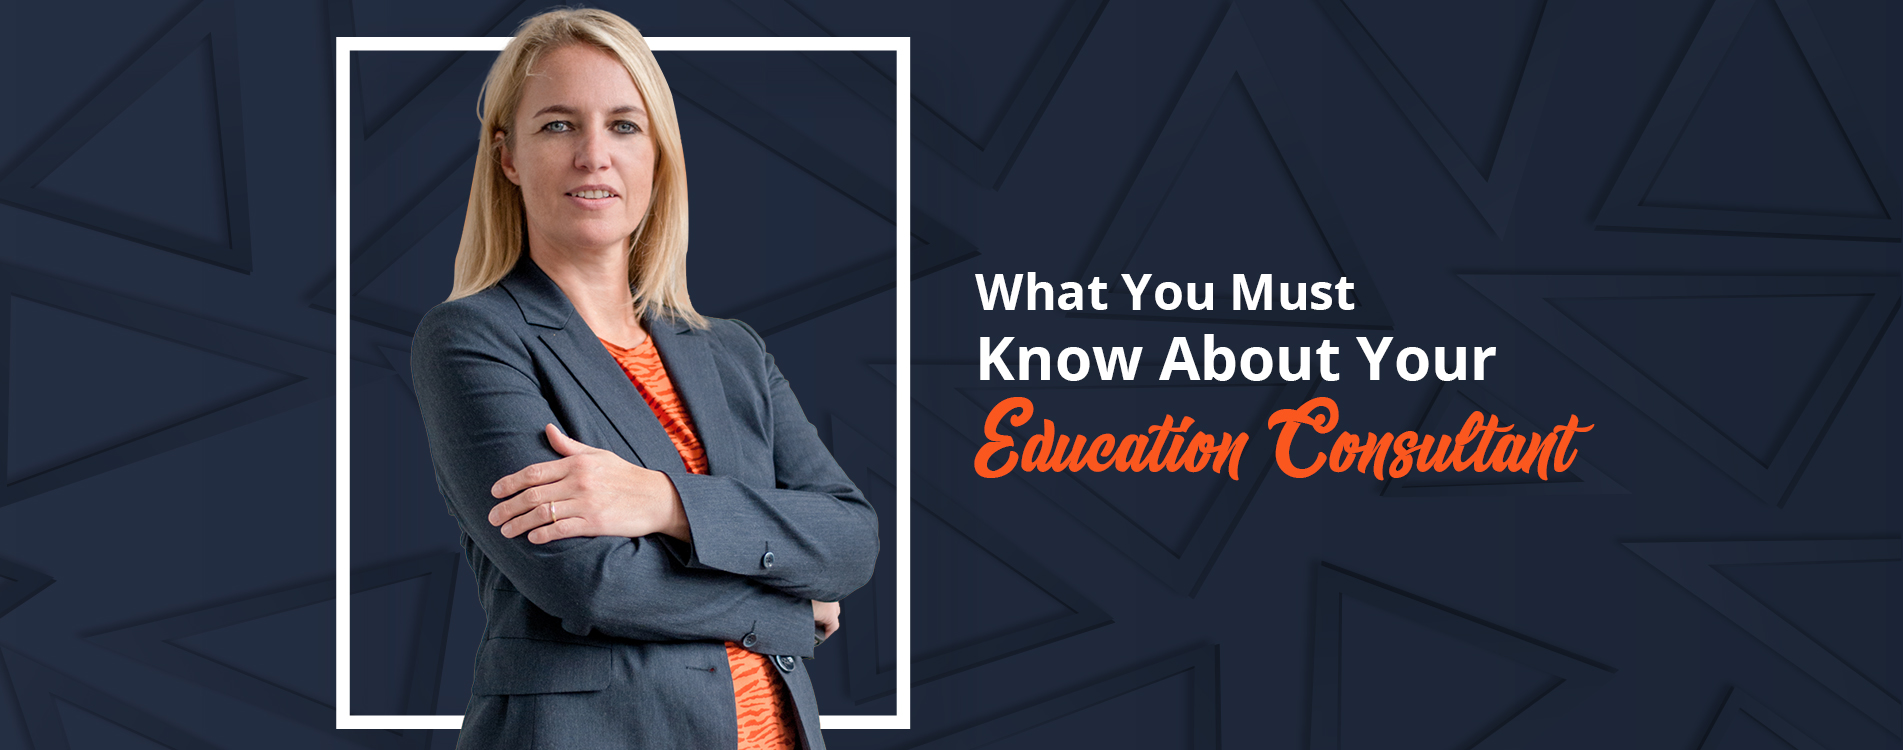 What You Must Know About Your Education Consultant